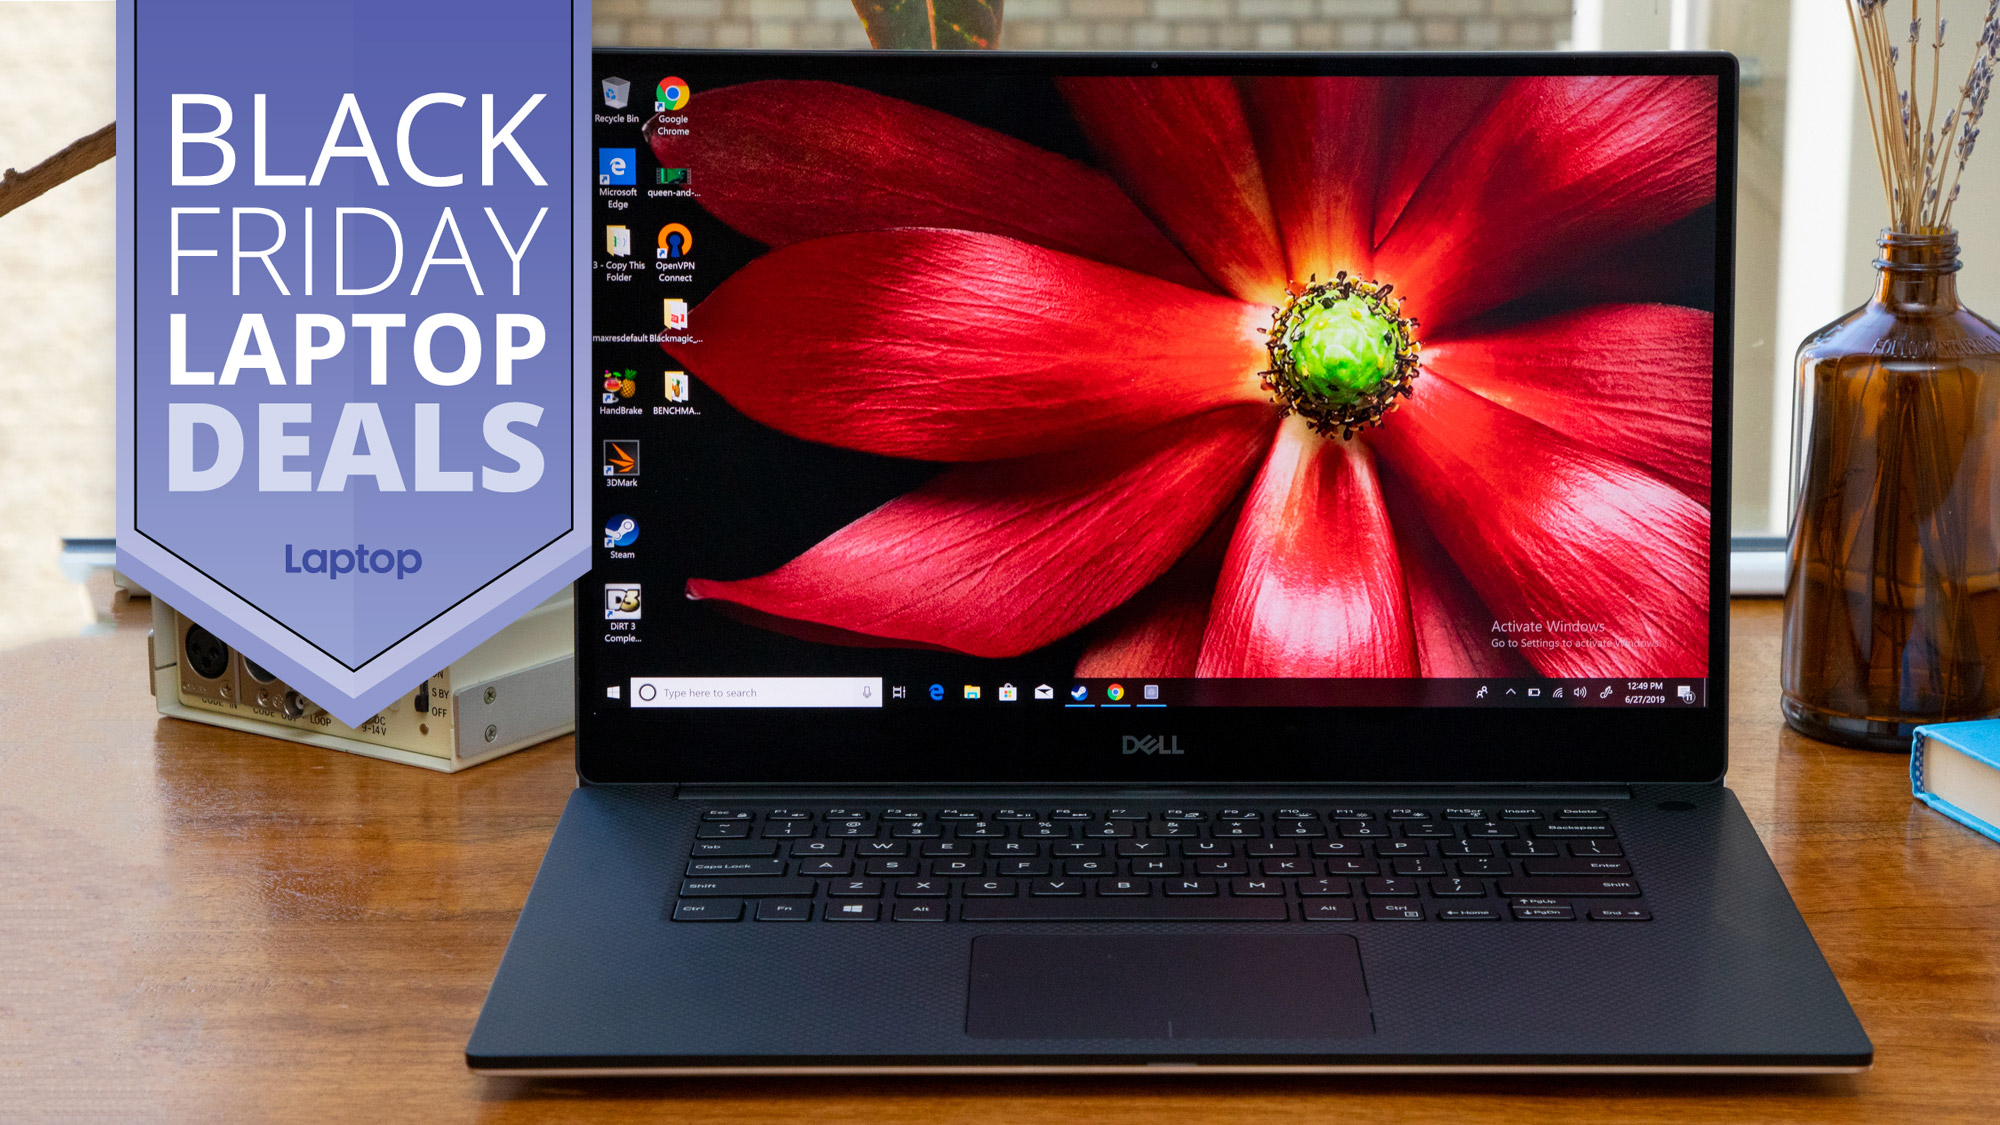 Best Laptop Deals Black Friday 2020.Best Black Friday Laptop Deals In 2019 Laptop Mag